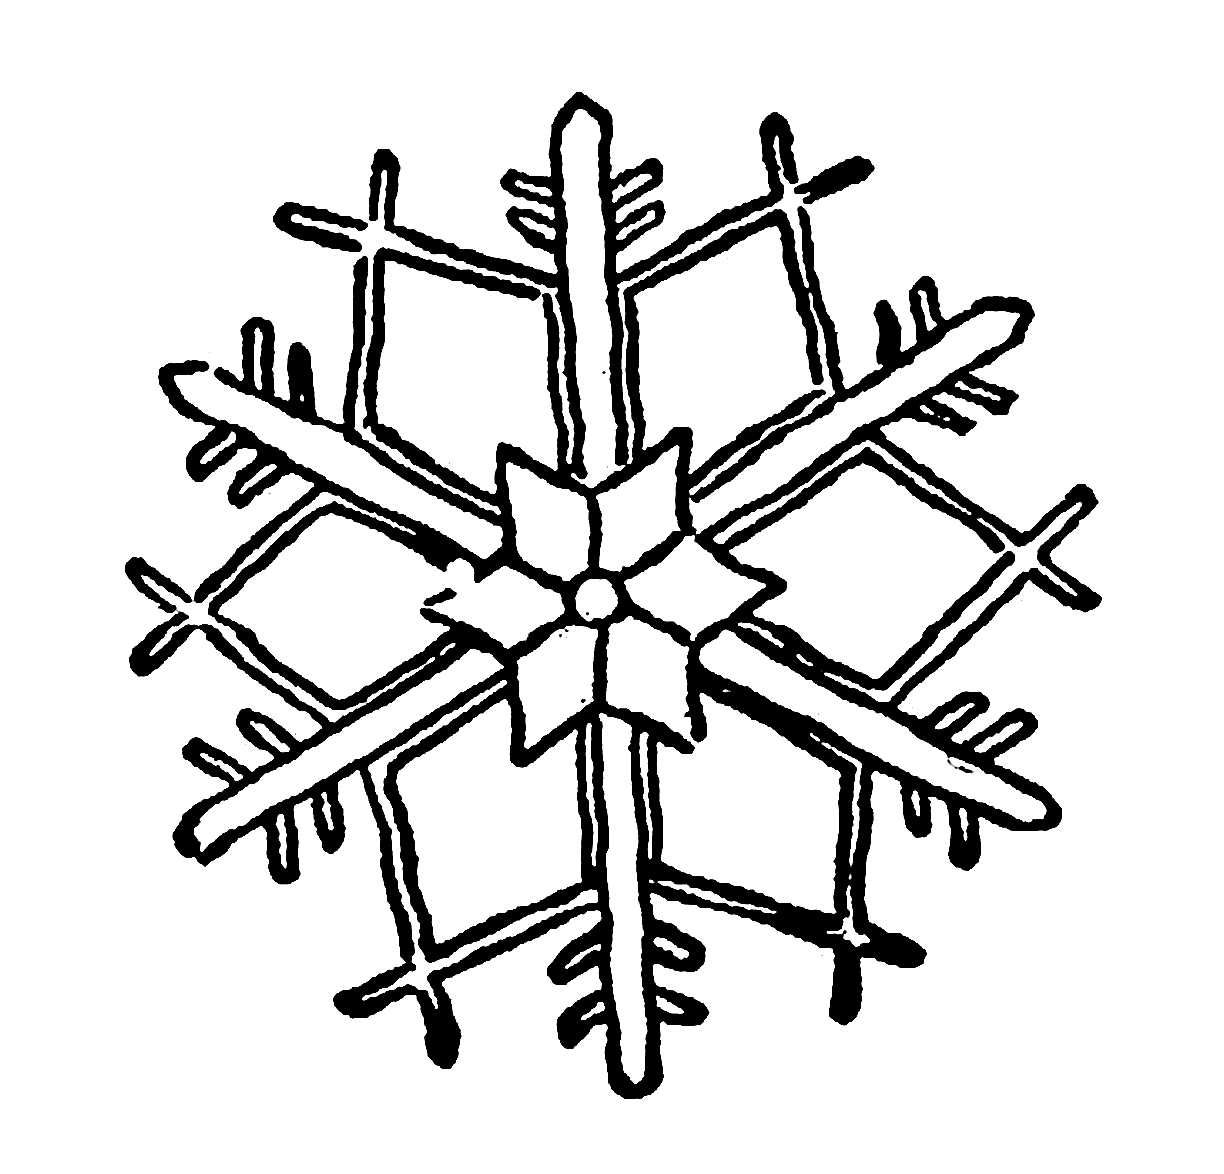 Digital Stamp Design Snowflake Digital Illustration Stock